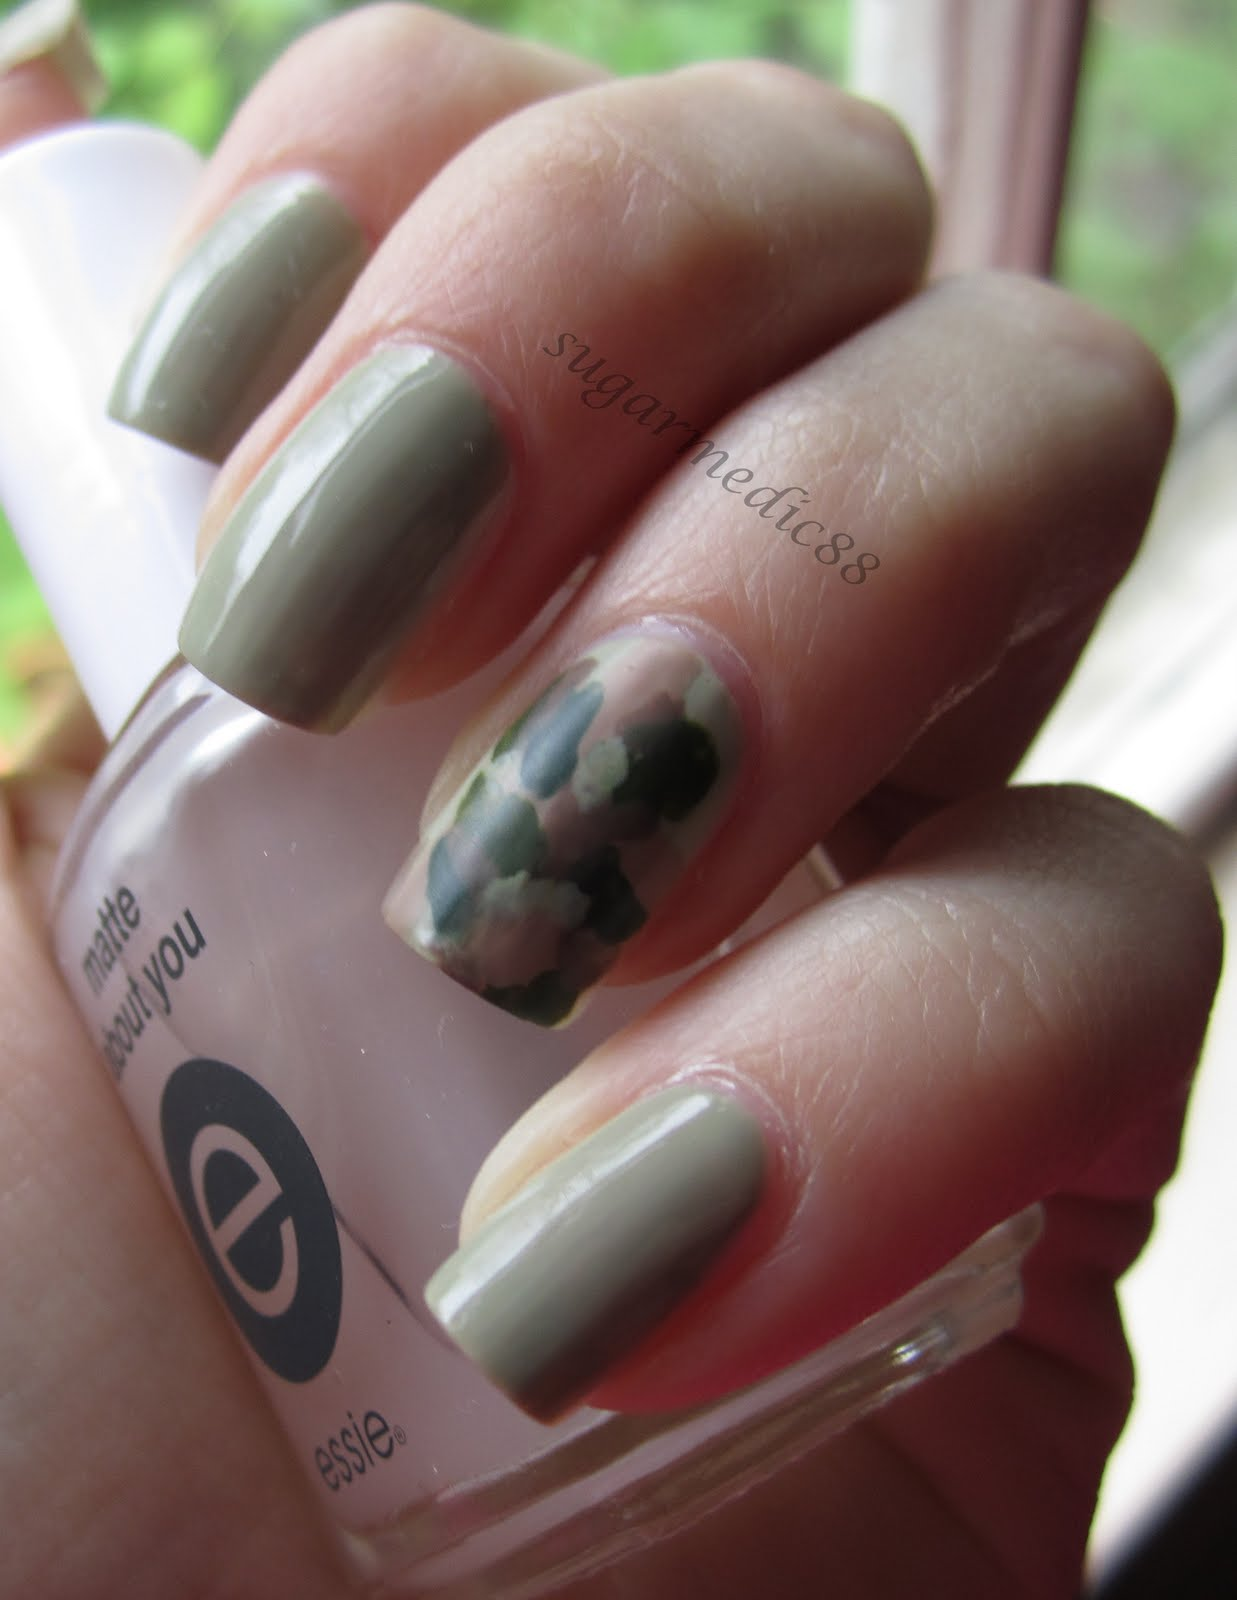 The polished medic how to camouflage nails tutorial monday may 16 2011 prinsesfo Choice Image